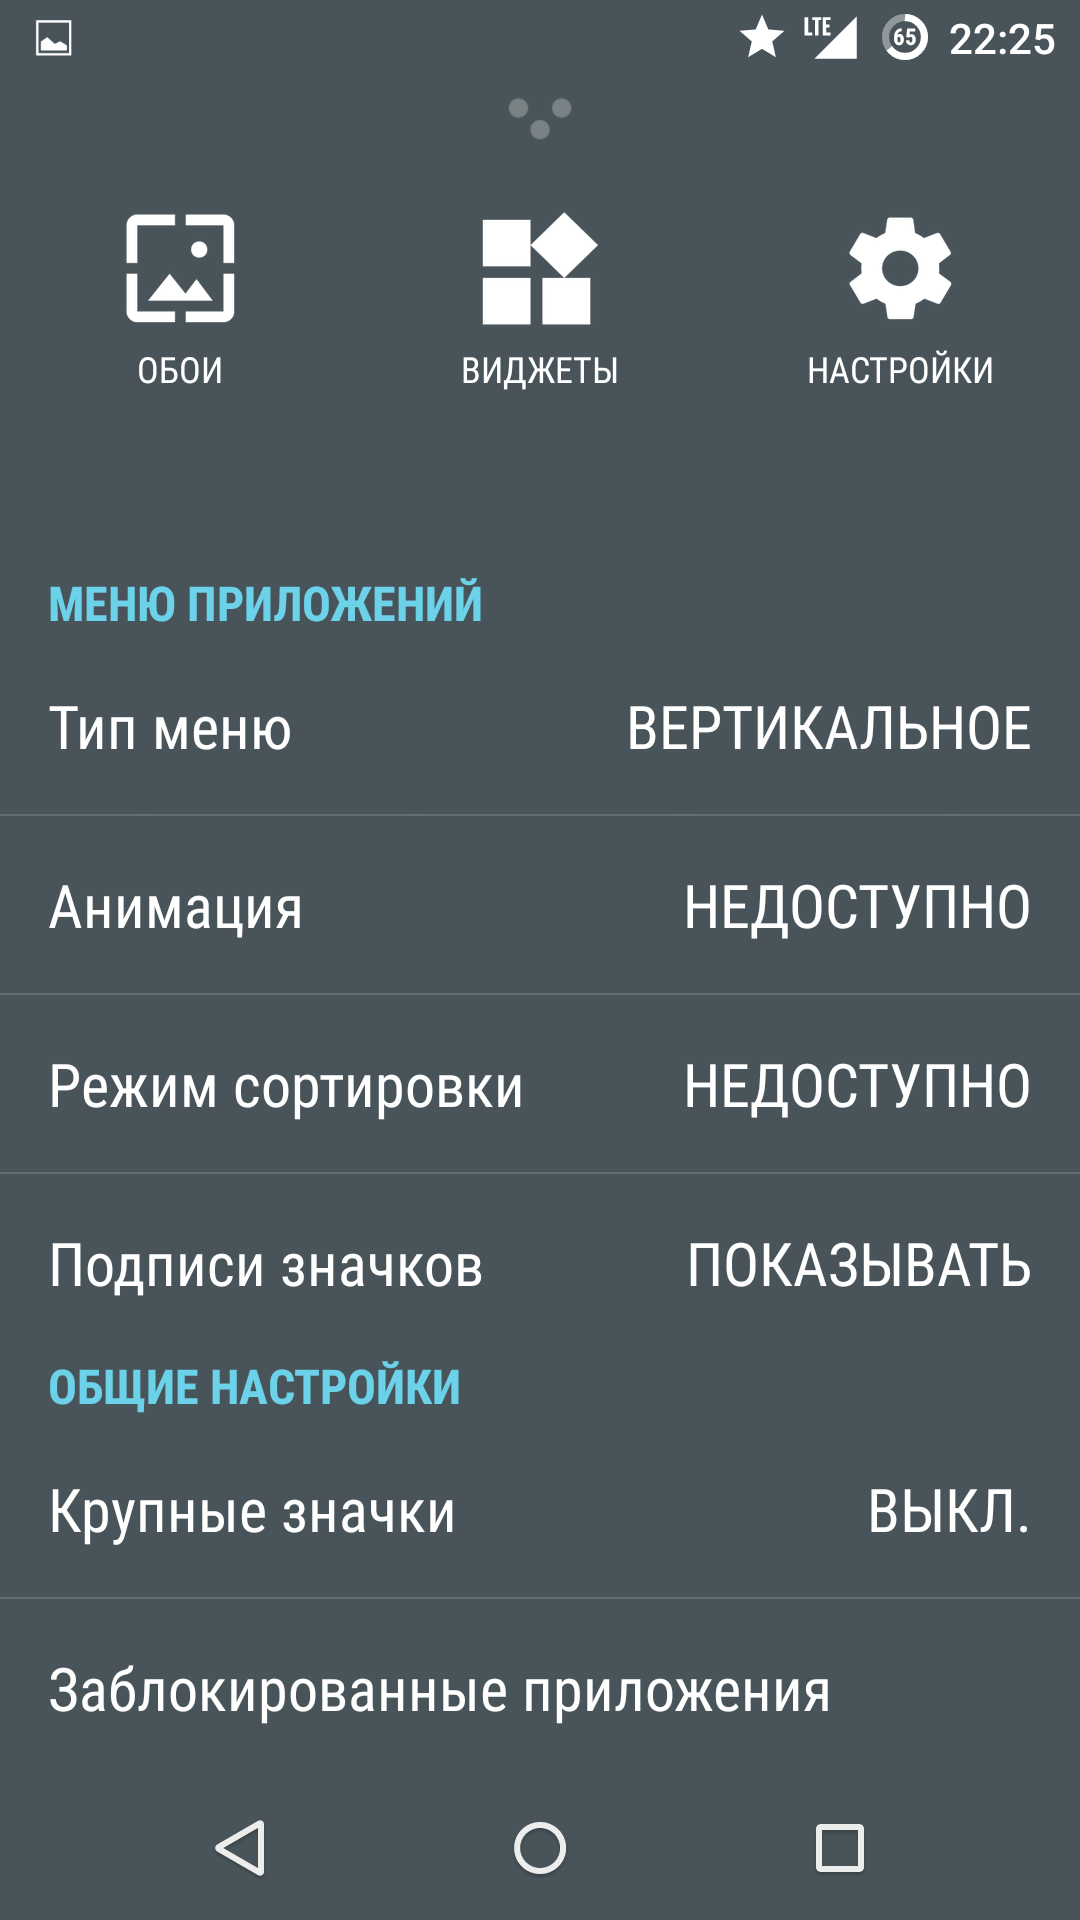 Полный обзор Cyanogen OS 12.1 (Android 5.1.1 Lollipop) - 6